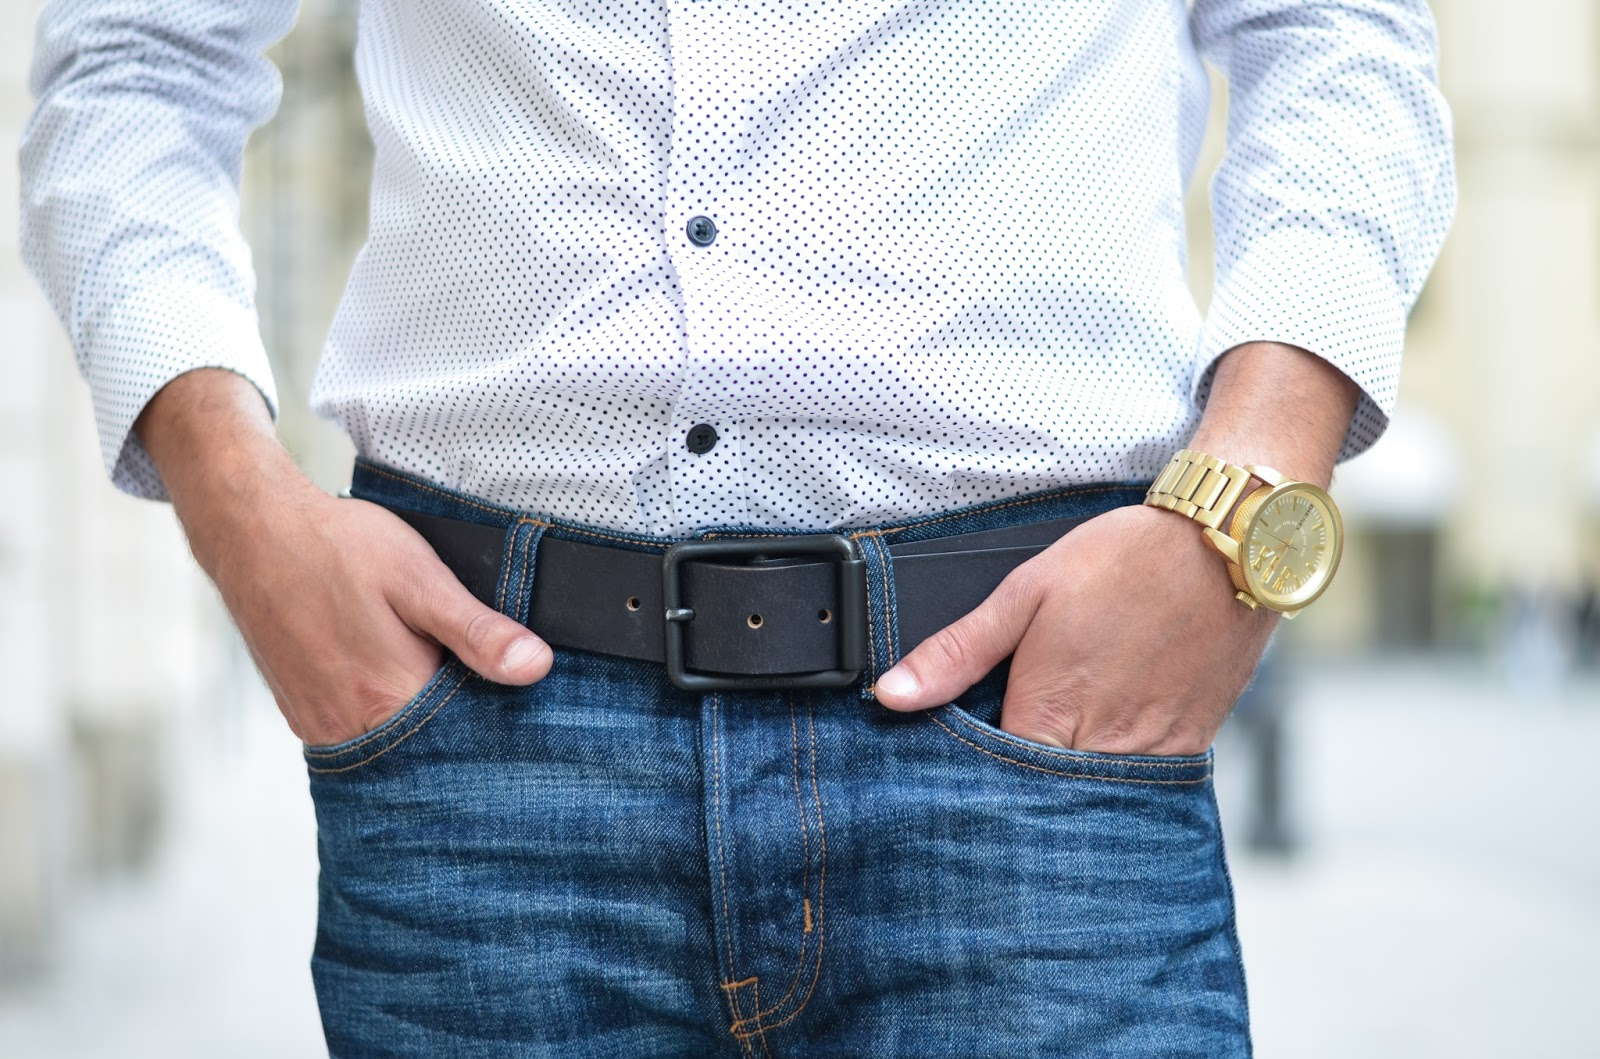 zara shirt calvin klein belt diesel watch hm jeans